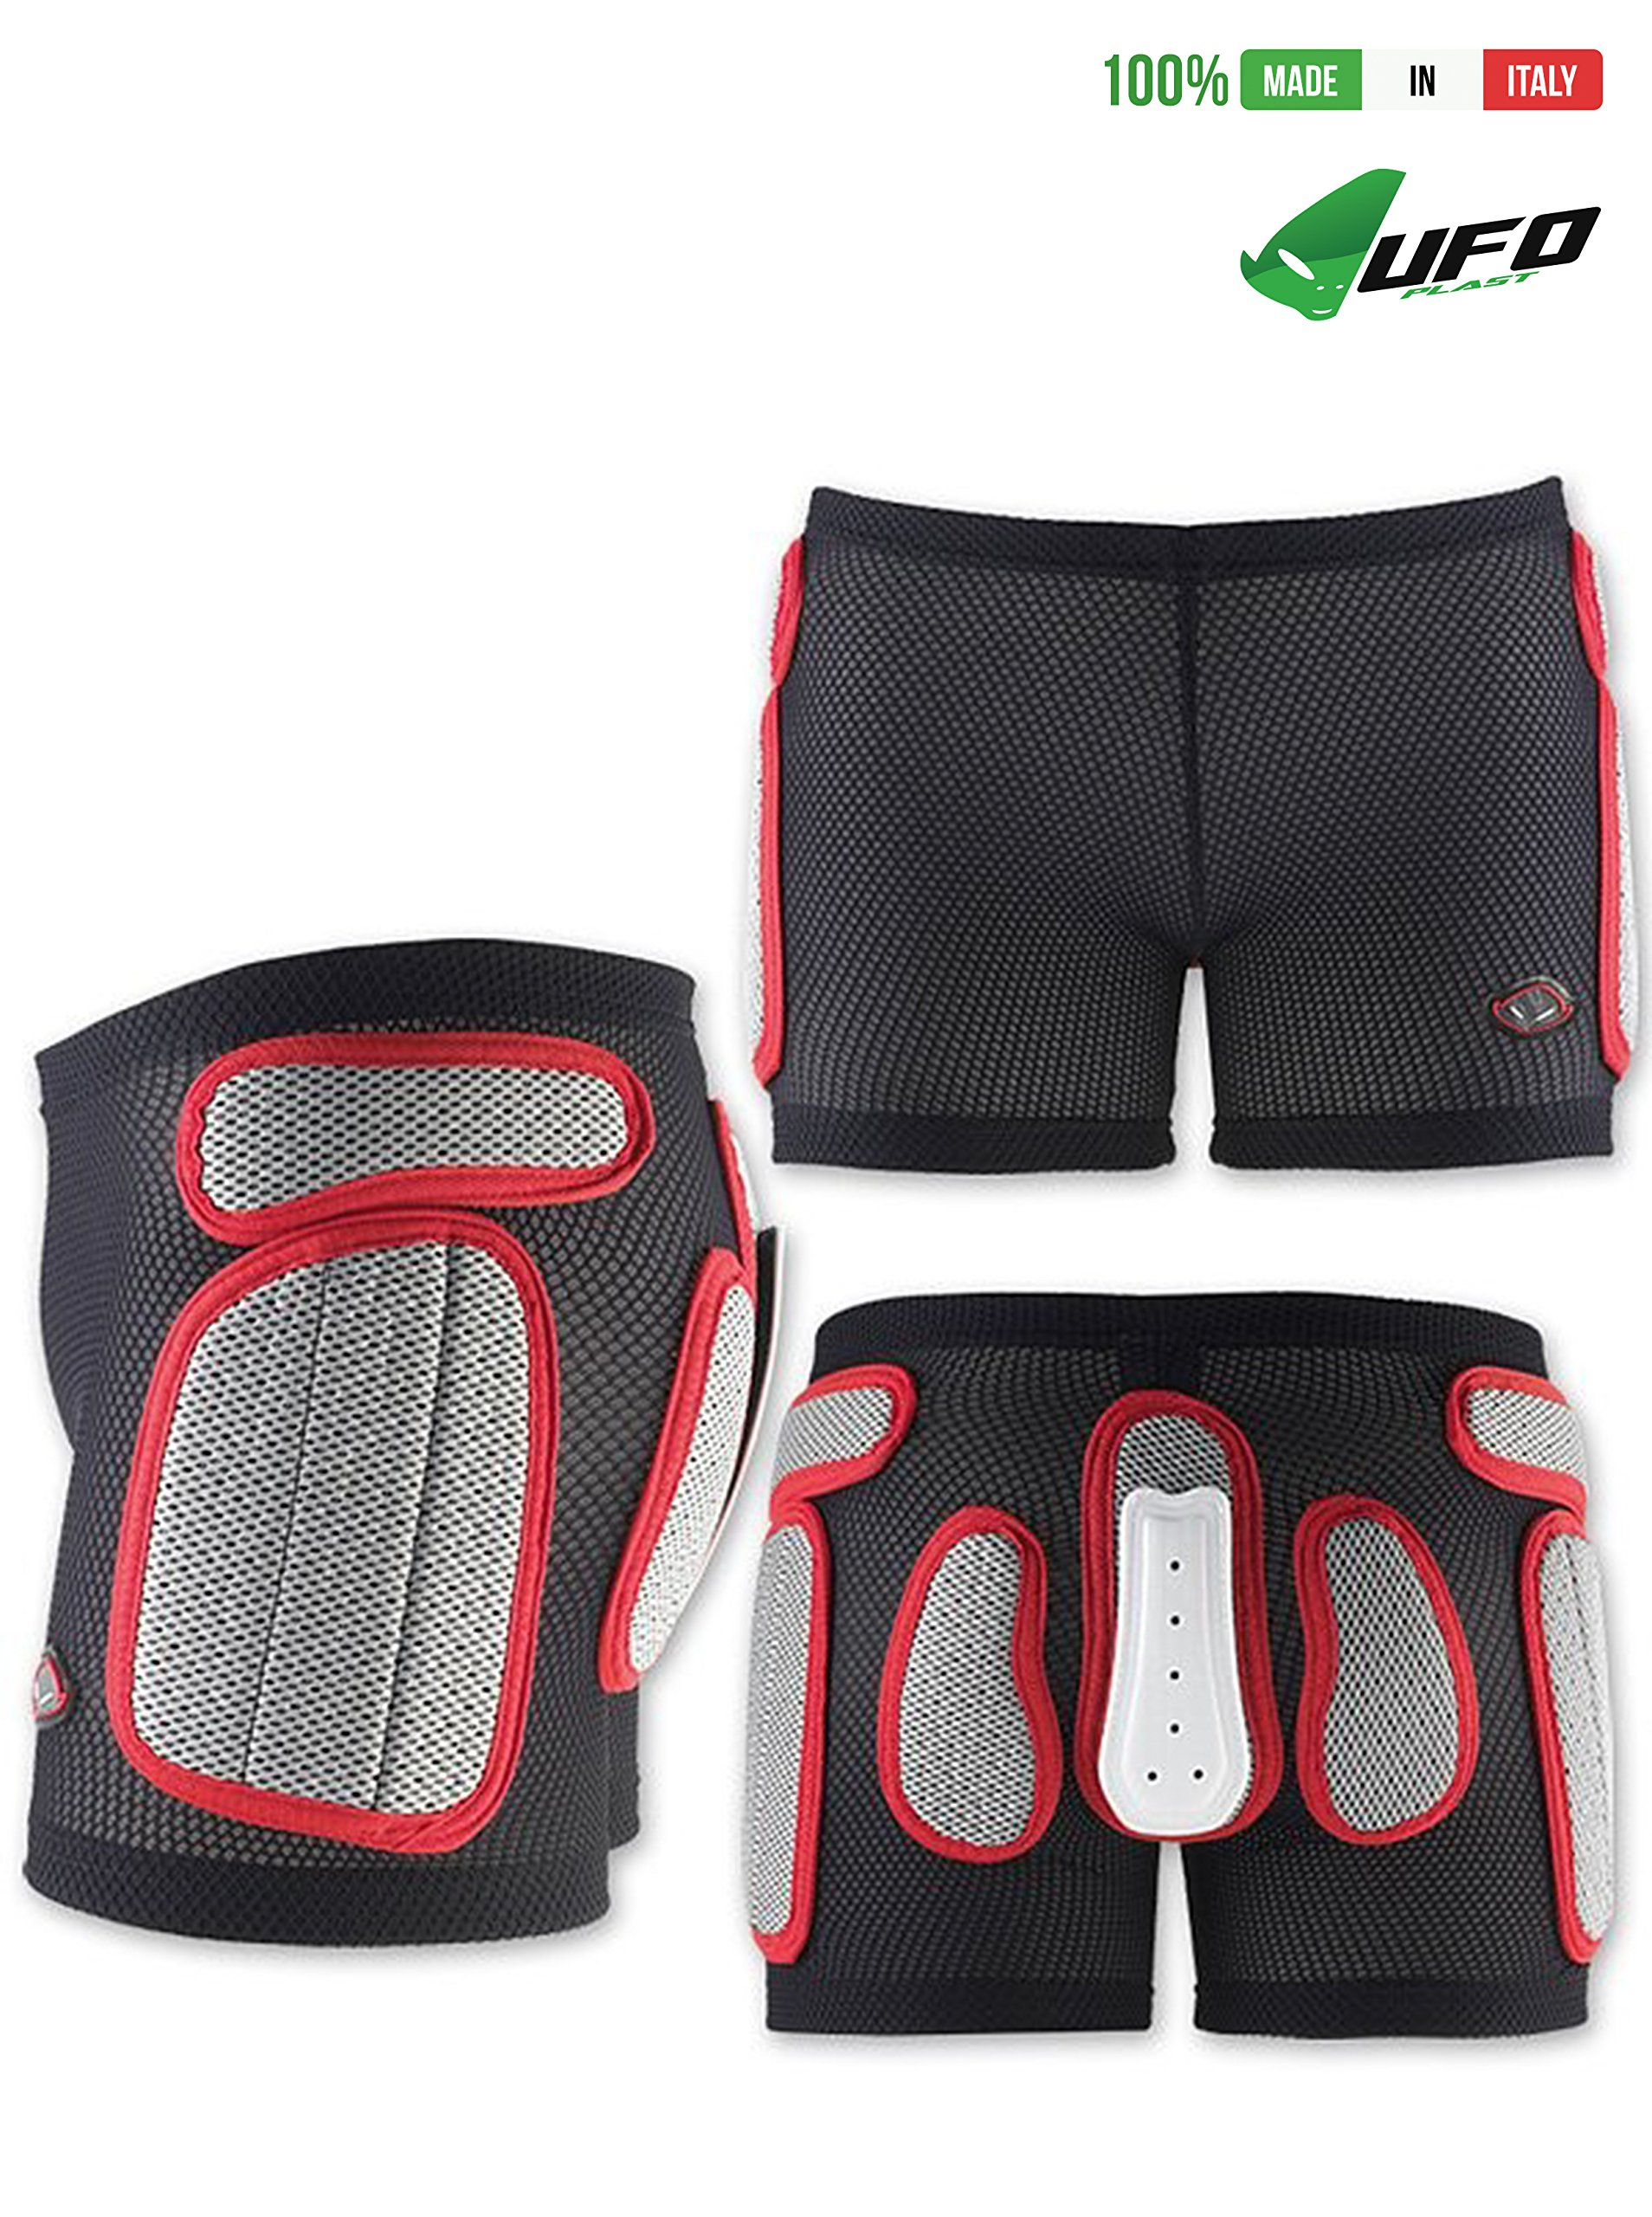 UFO PLAST Made in Italy SK09125 Soft Padded Shorts for Kids / Removable Back Protection / Airnet Material / For: Snowboard, Skateboard, Ski, Skating / Size: M / Color: White with Red